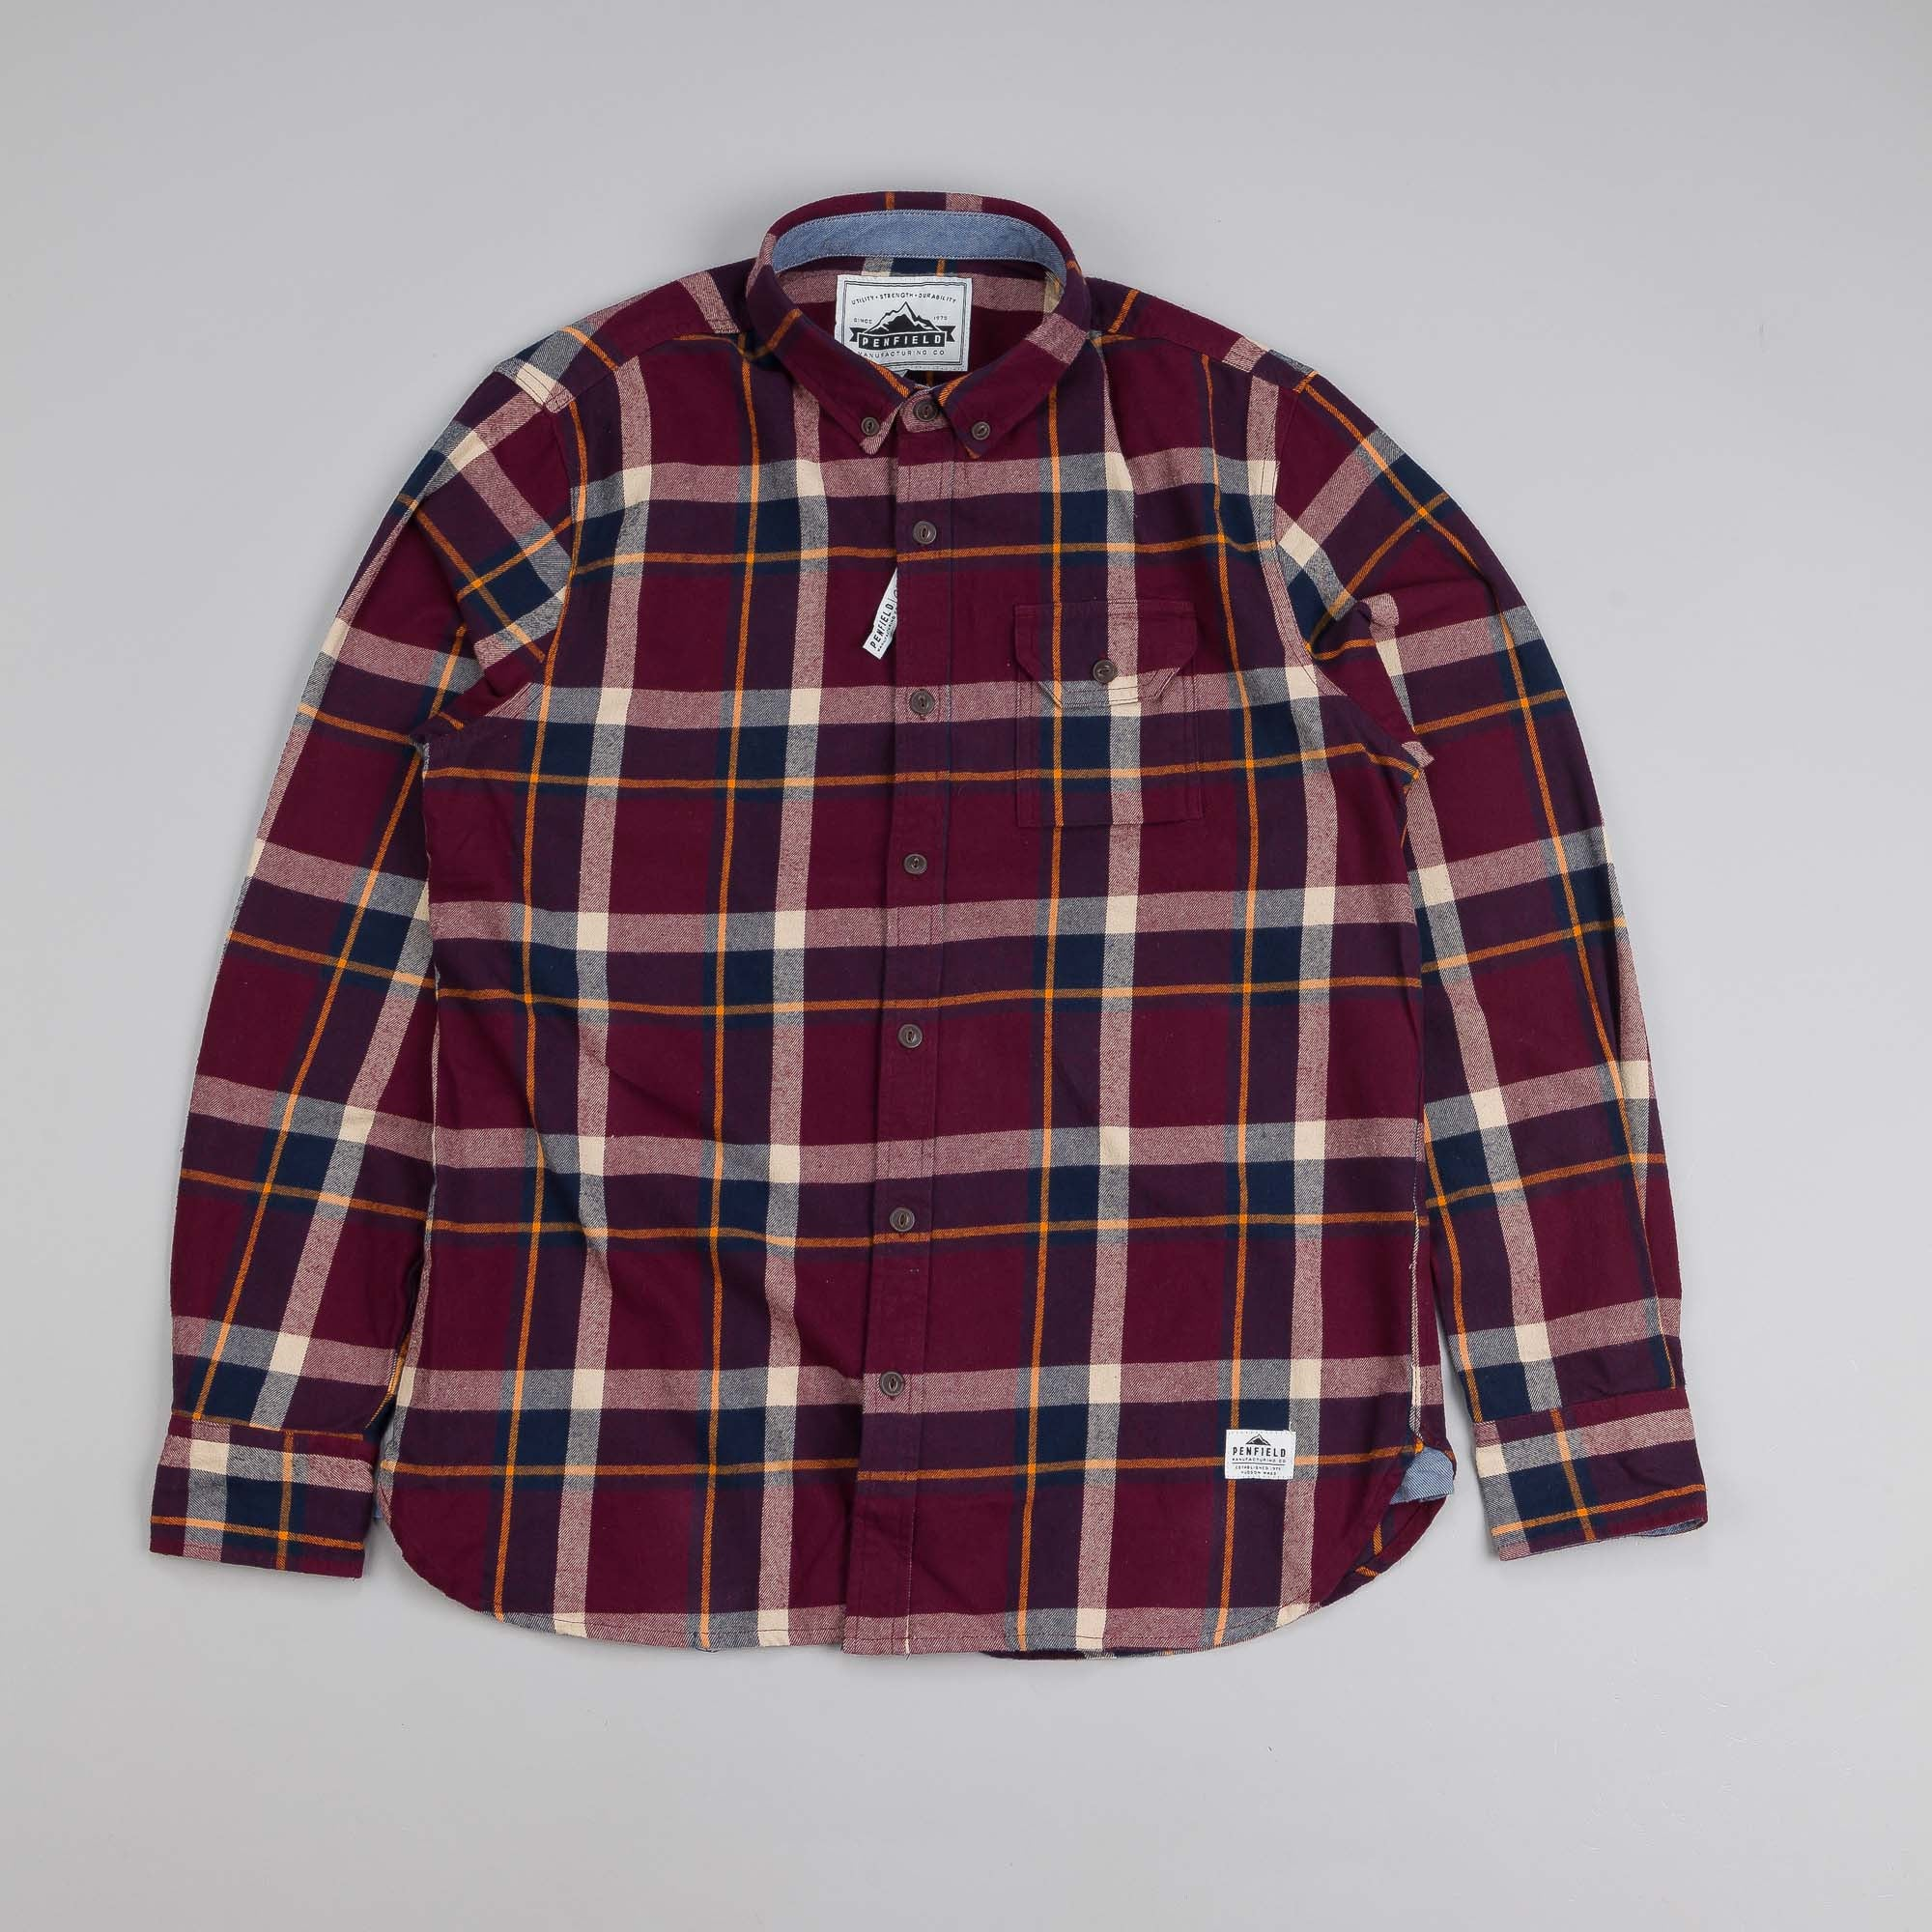 Penfield Rutherford Shirt Burgundy